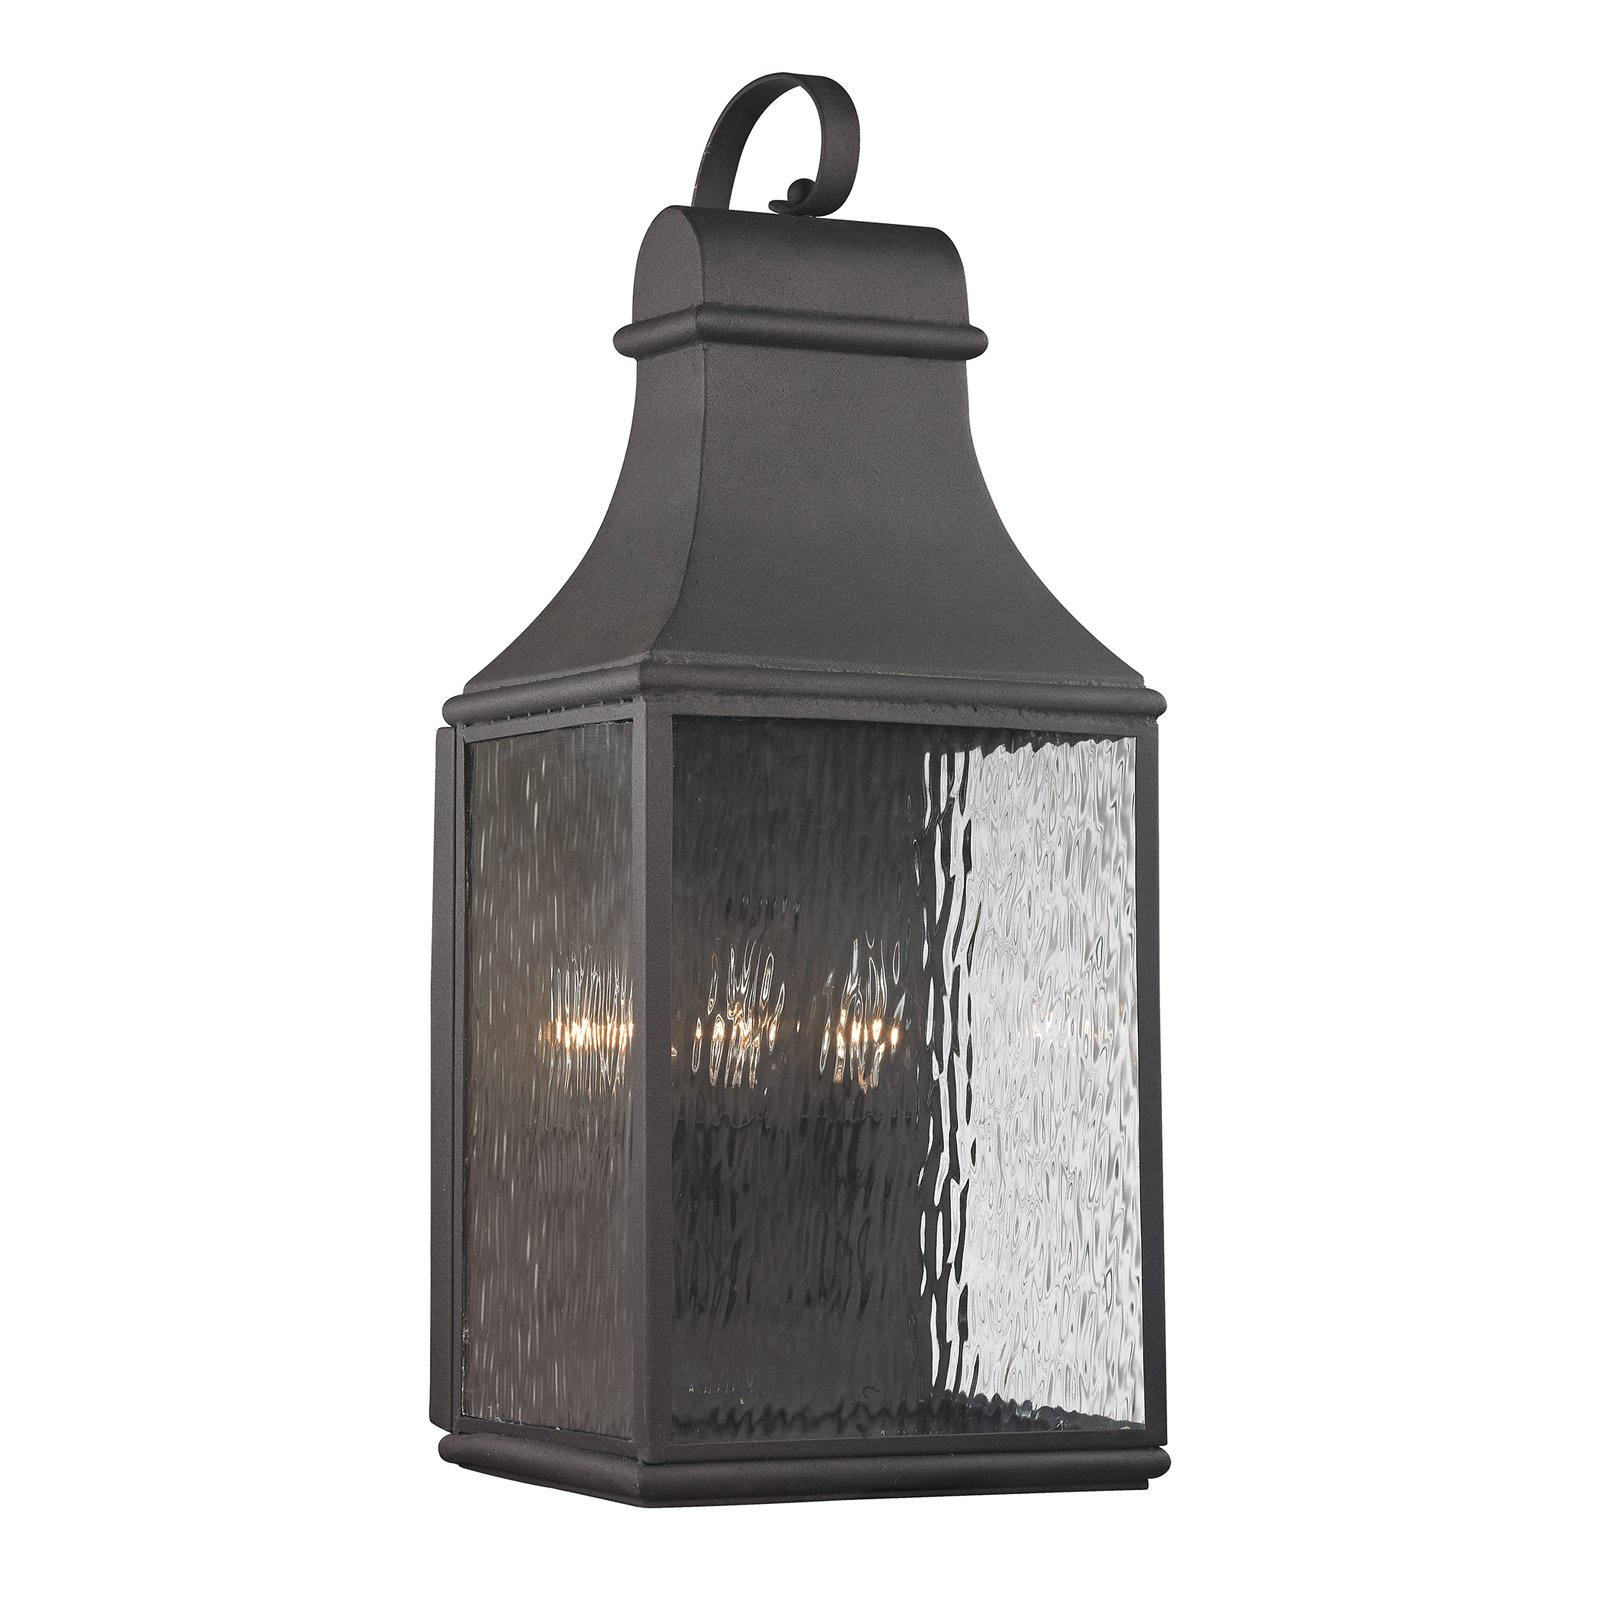 ELK Lighting Forged Jefferson 4707 3-Light Outdoor Wall Sconce by Elk